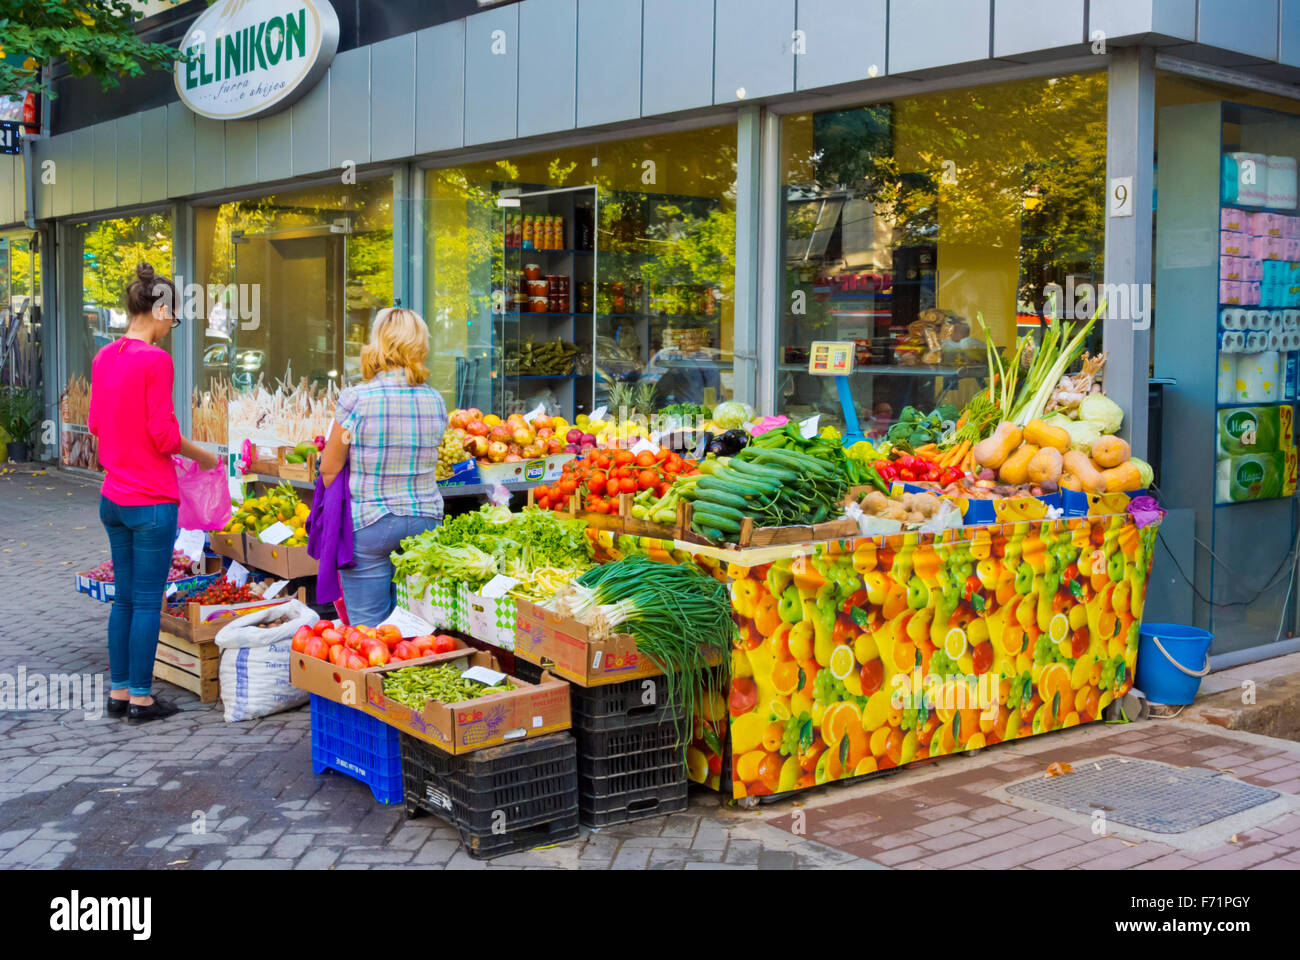 Fresh produce stall, Blloku district, Tirana, Albania - Stock Image